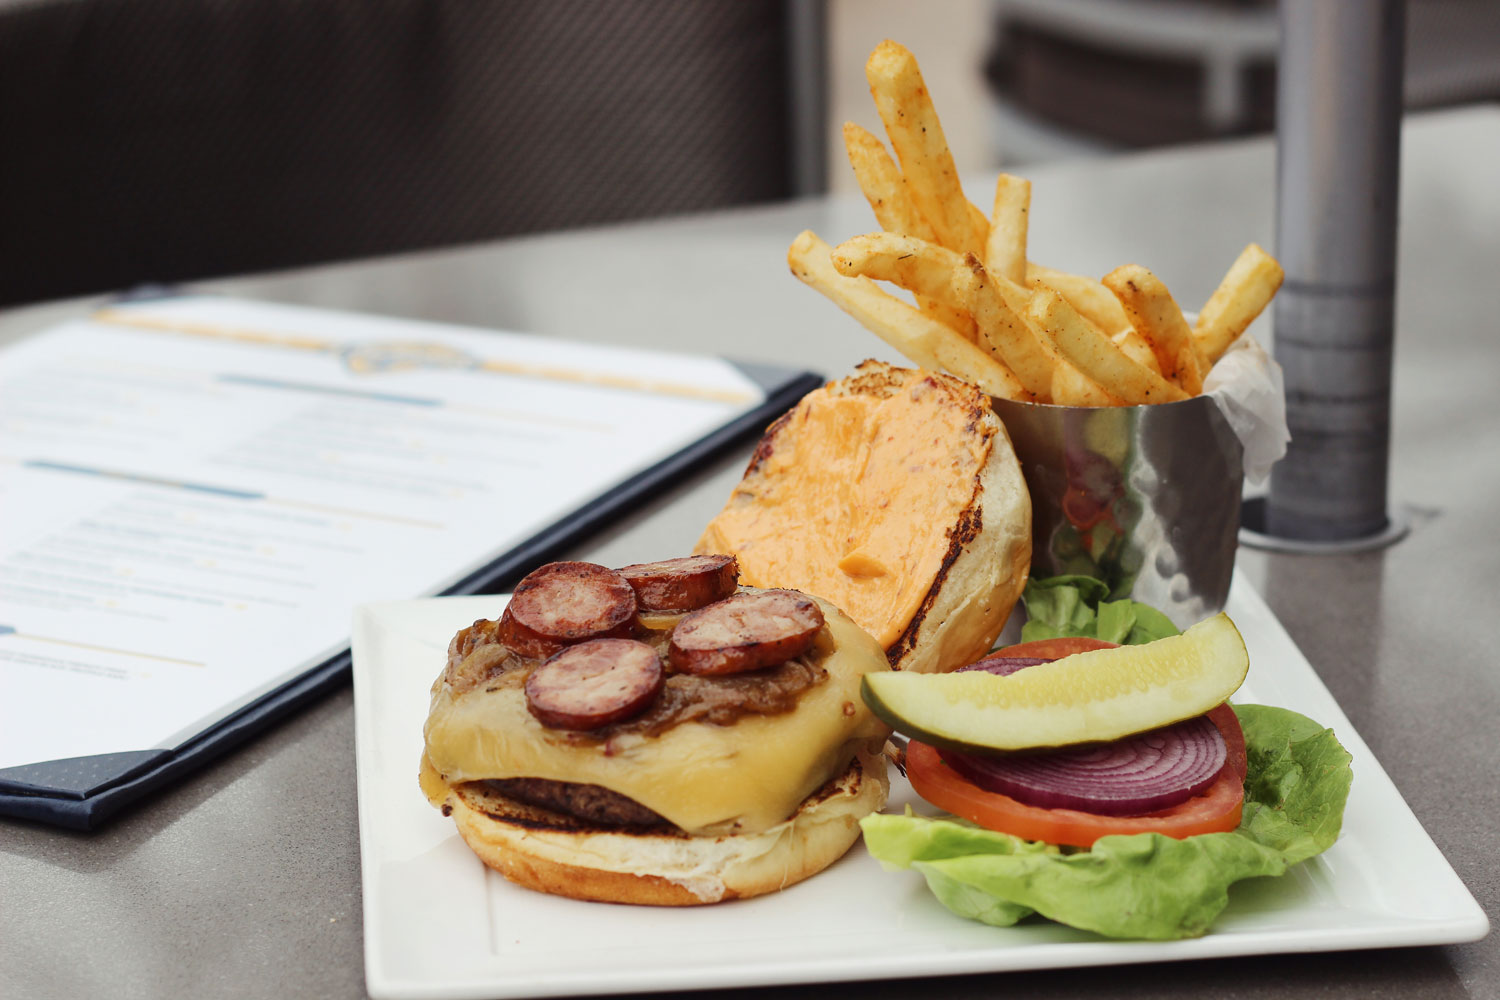 The Creole burger, photo courtesy of Lagasse's Stadium.